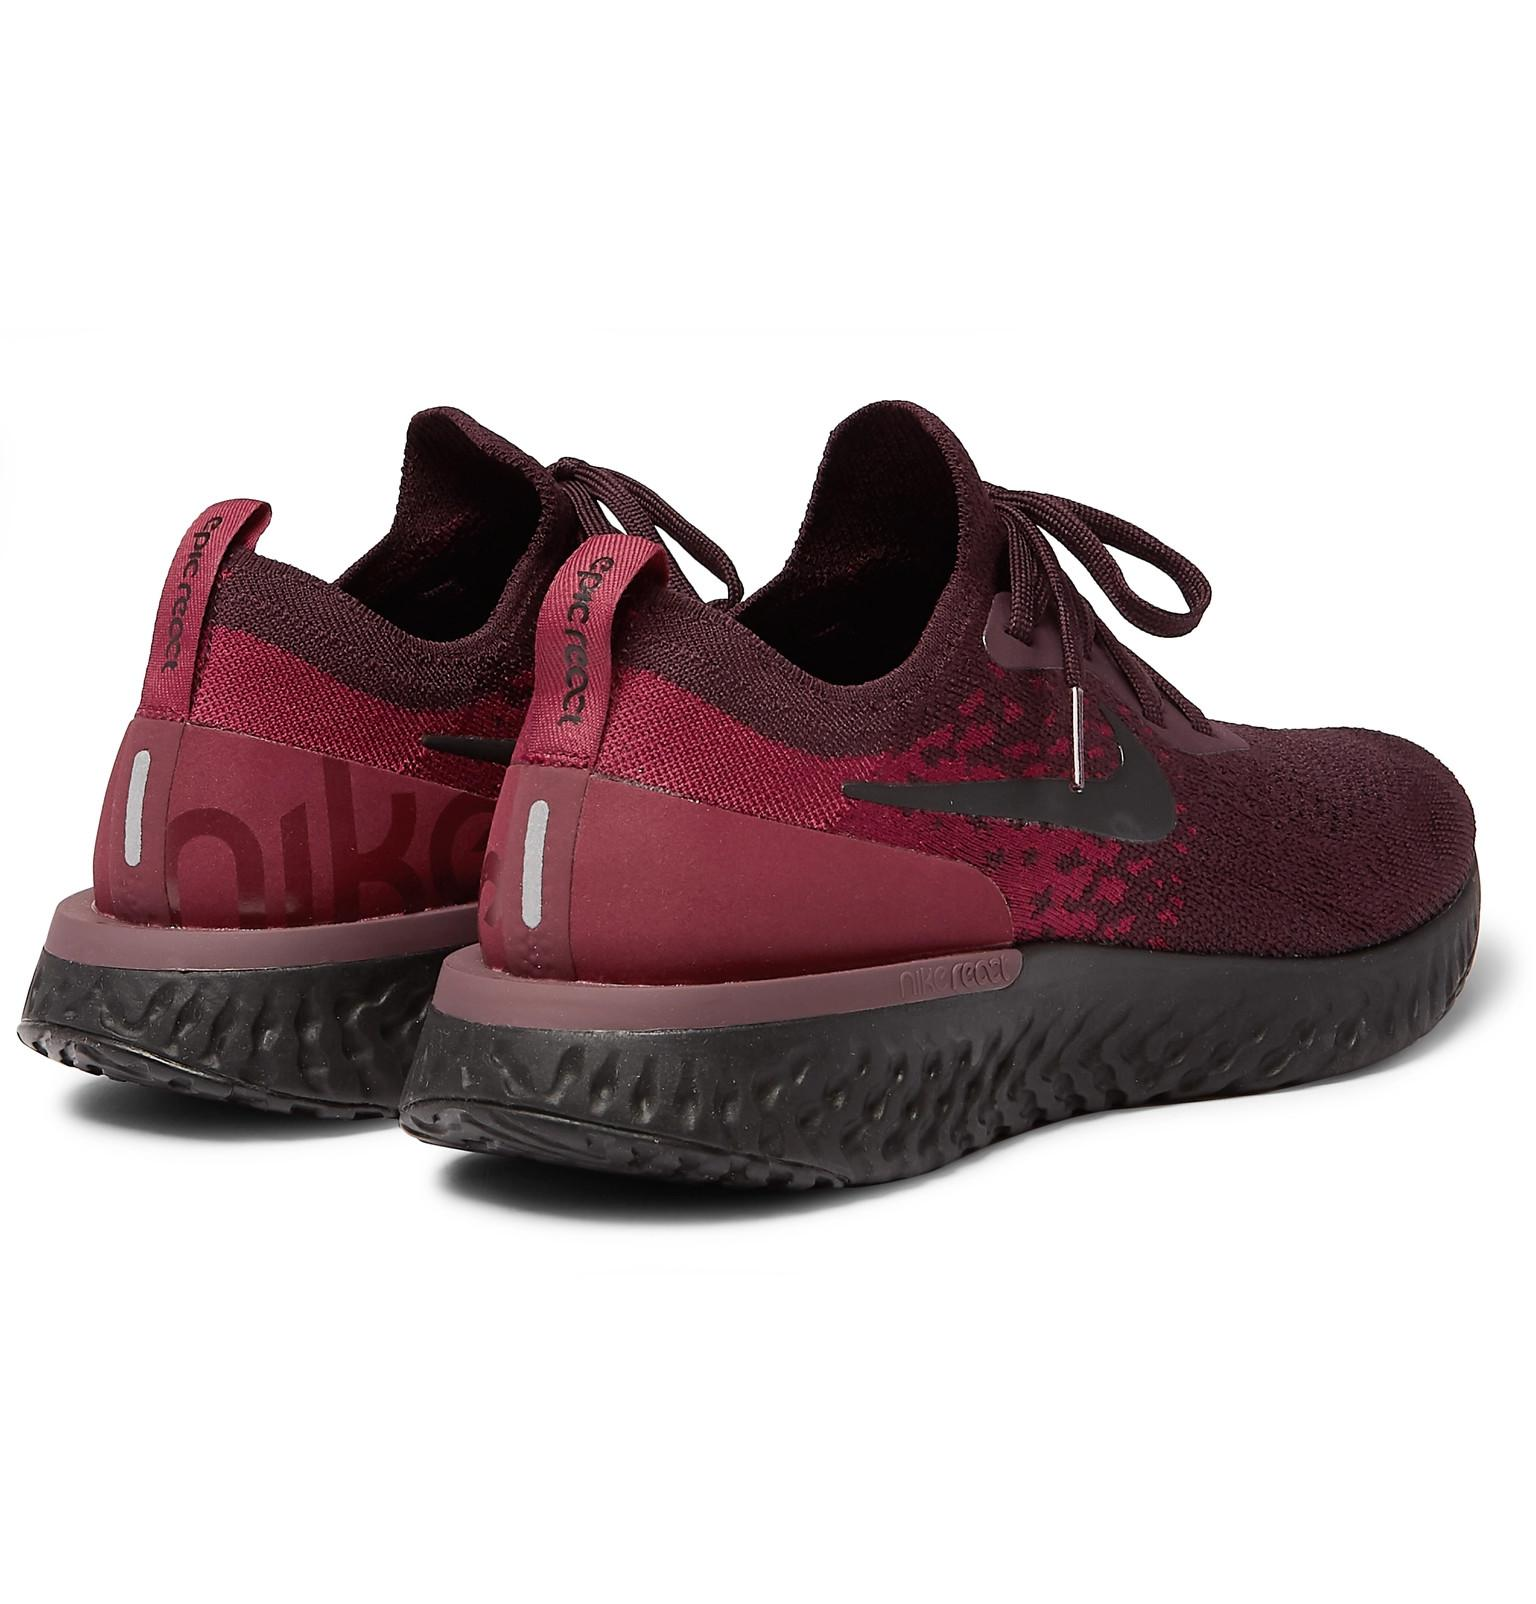 promo code da824 5e5a1 Nike Epic React Rubber-trimmed Flyknit Running Sneakers for Men - Lyst